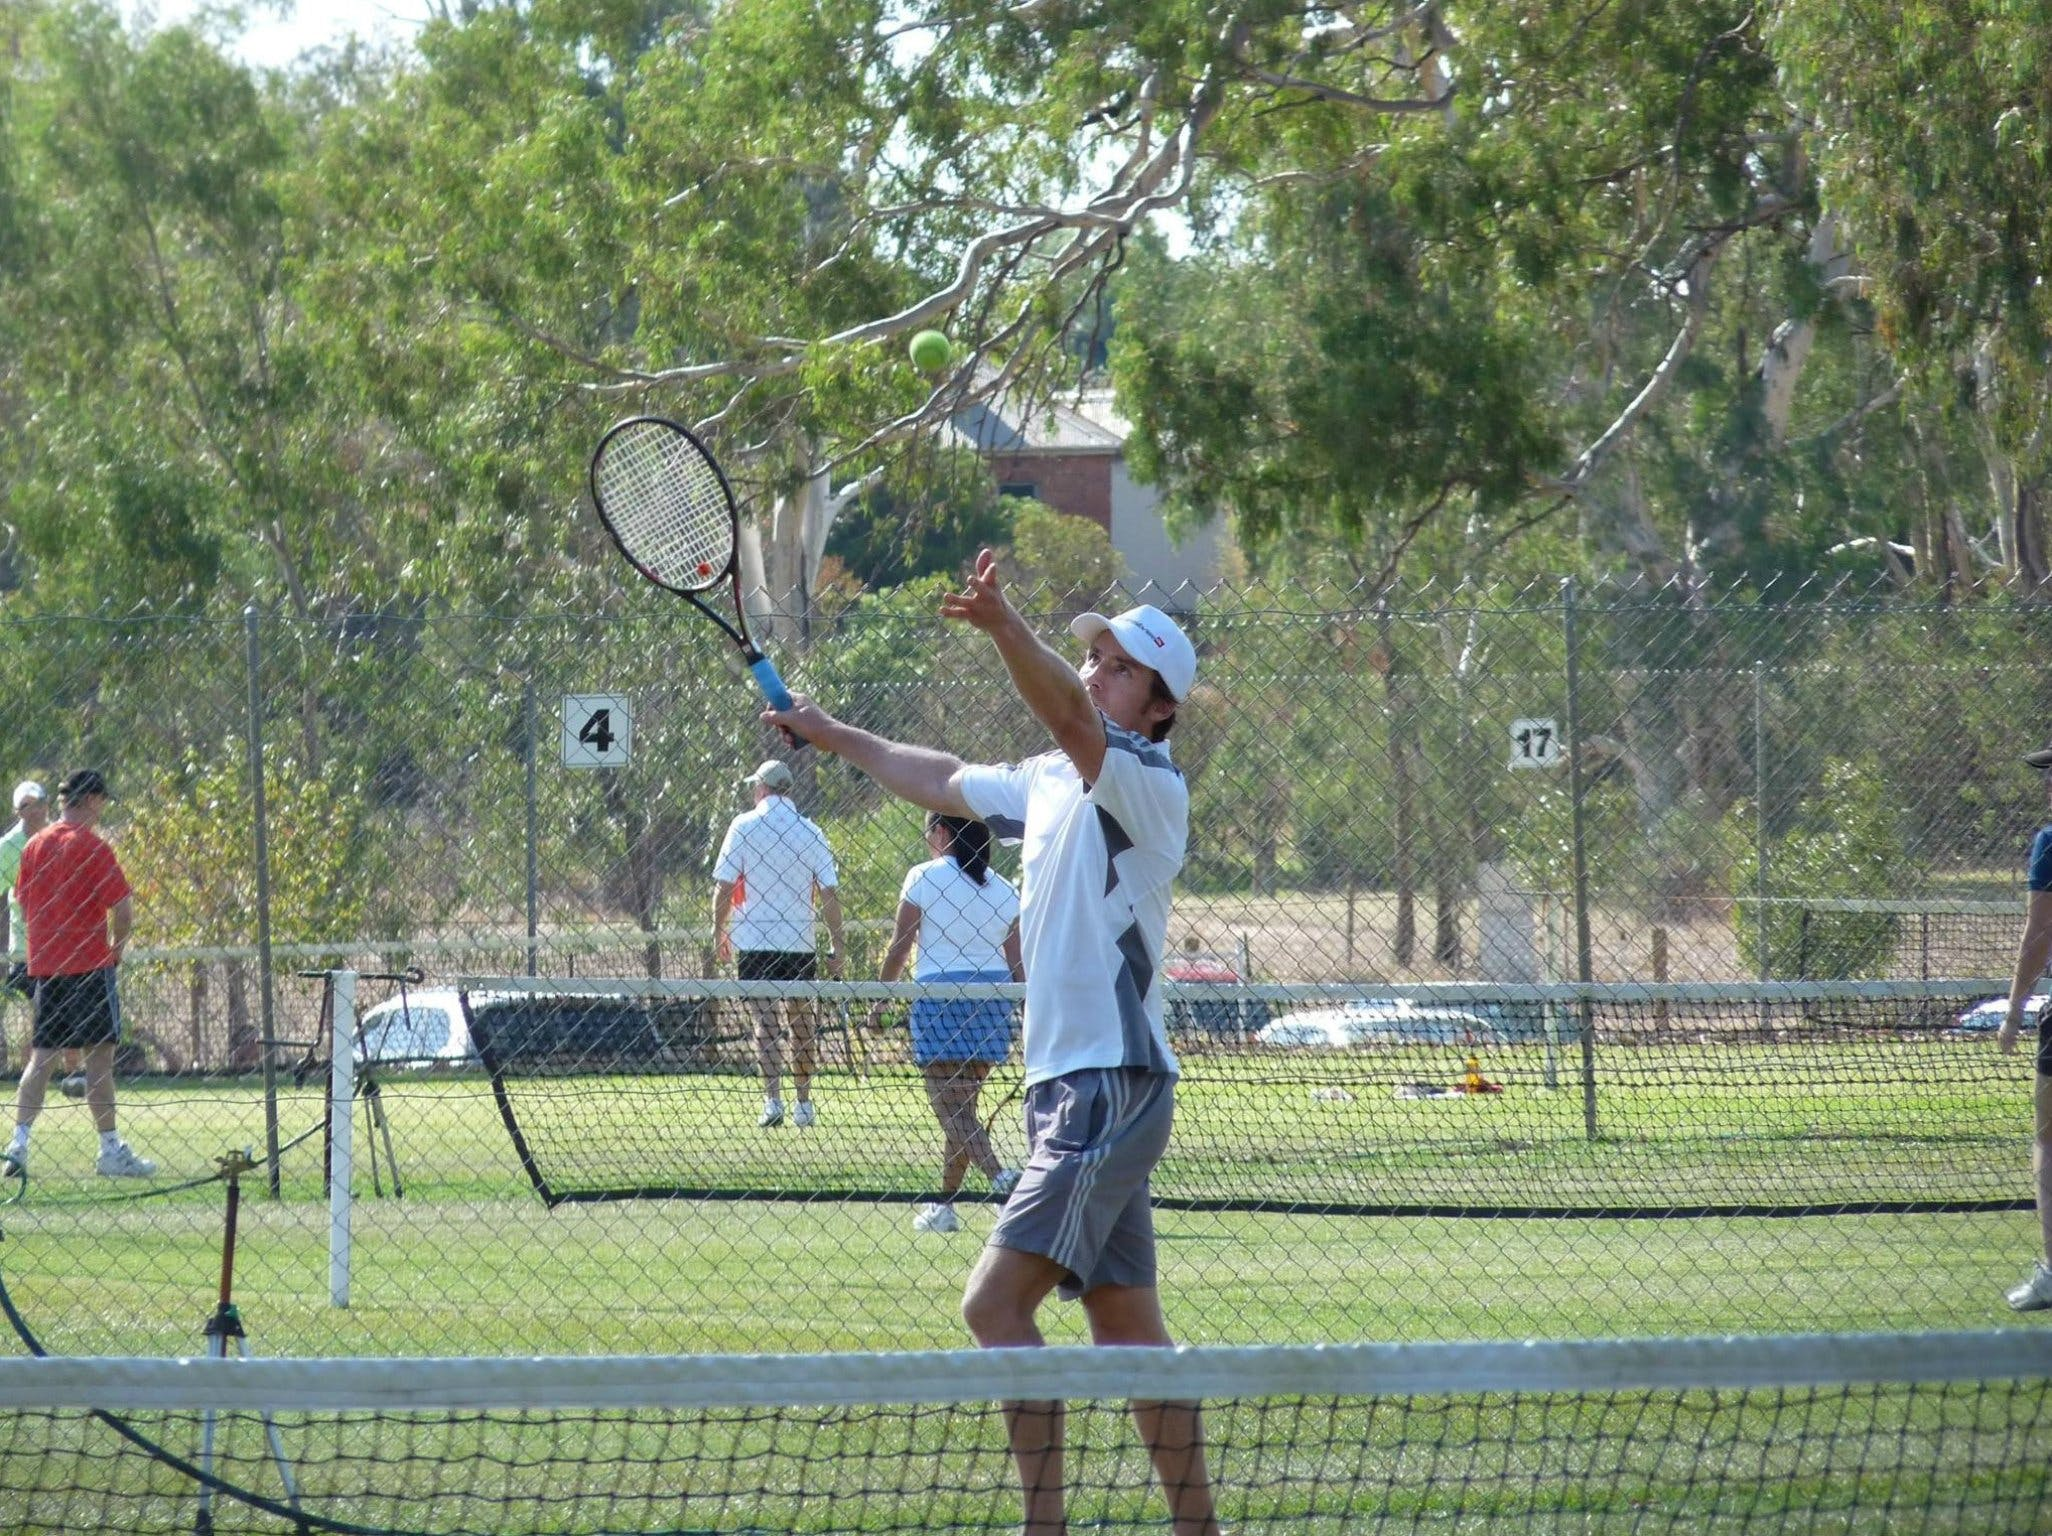 Corowa Easter Lawn Tennis Tournament - Yarra Valley Accommodation